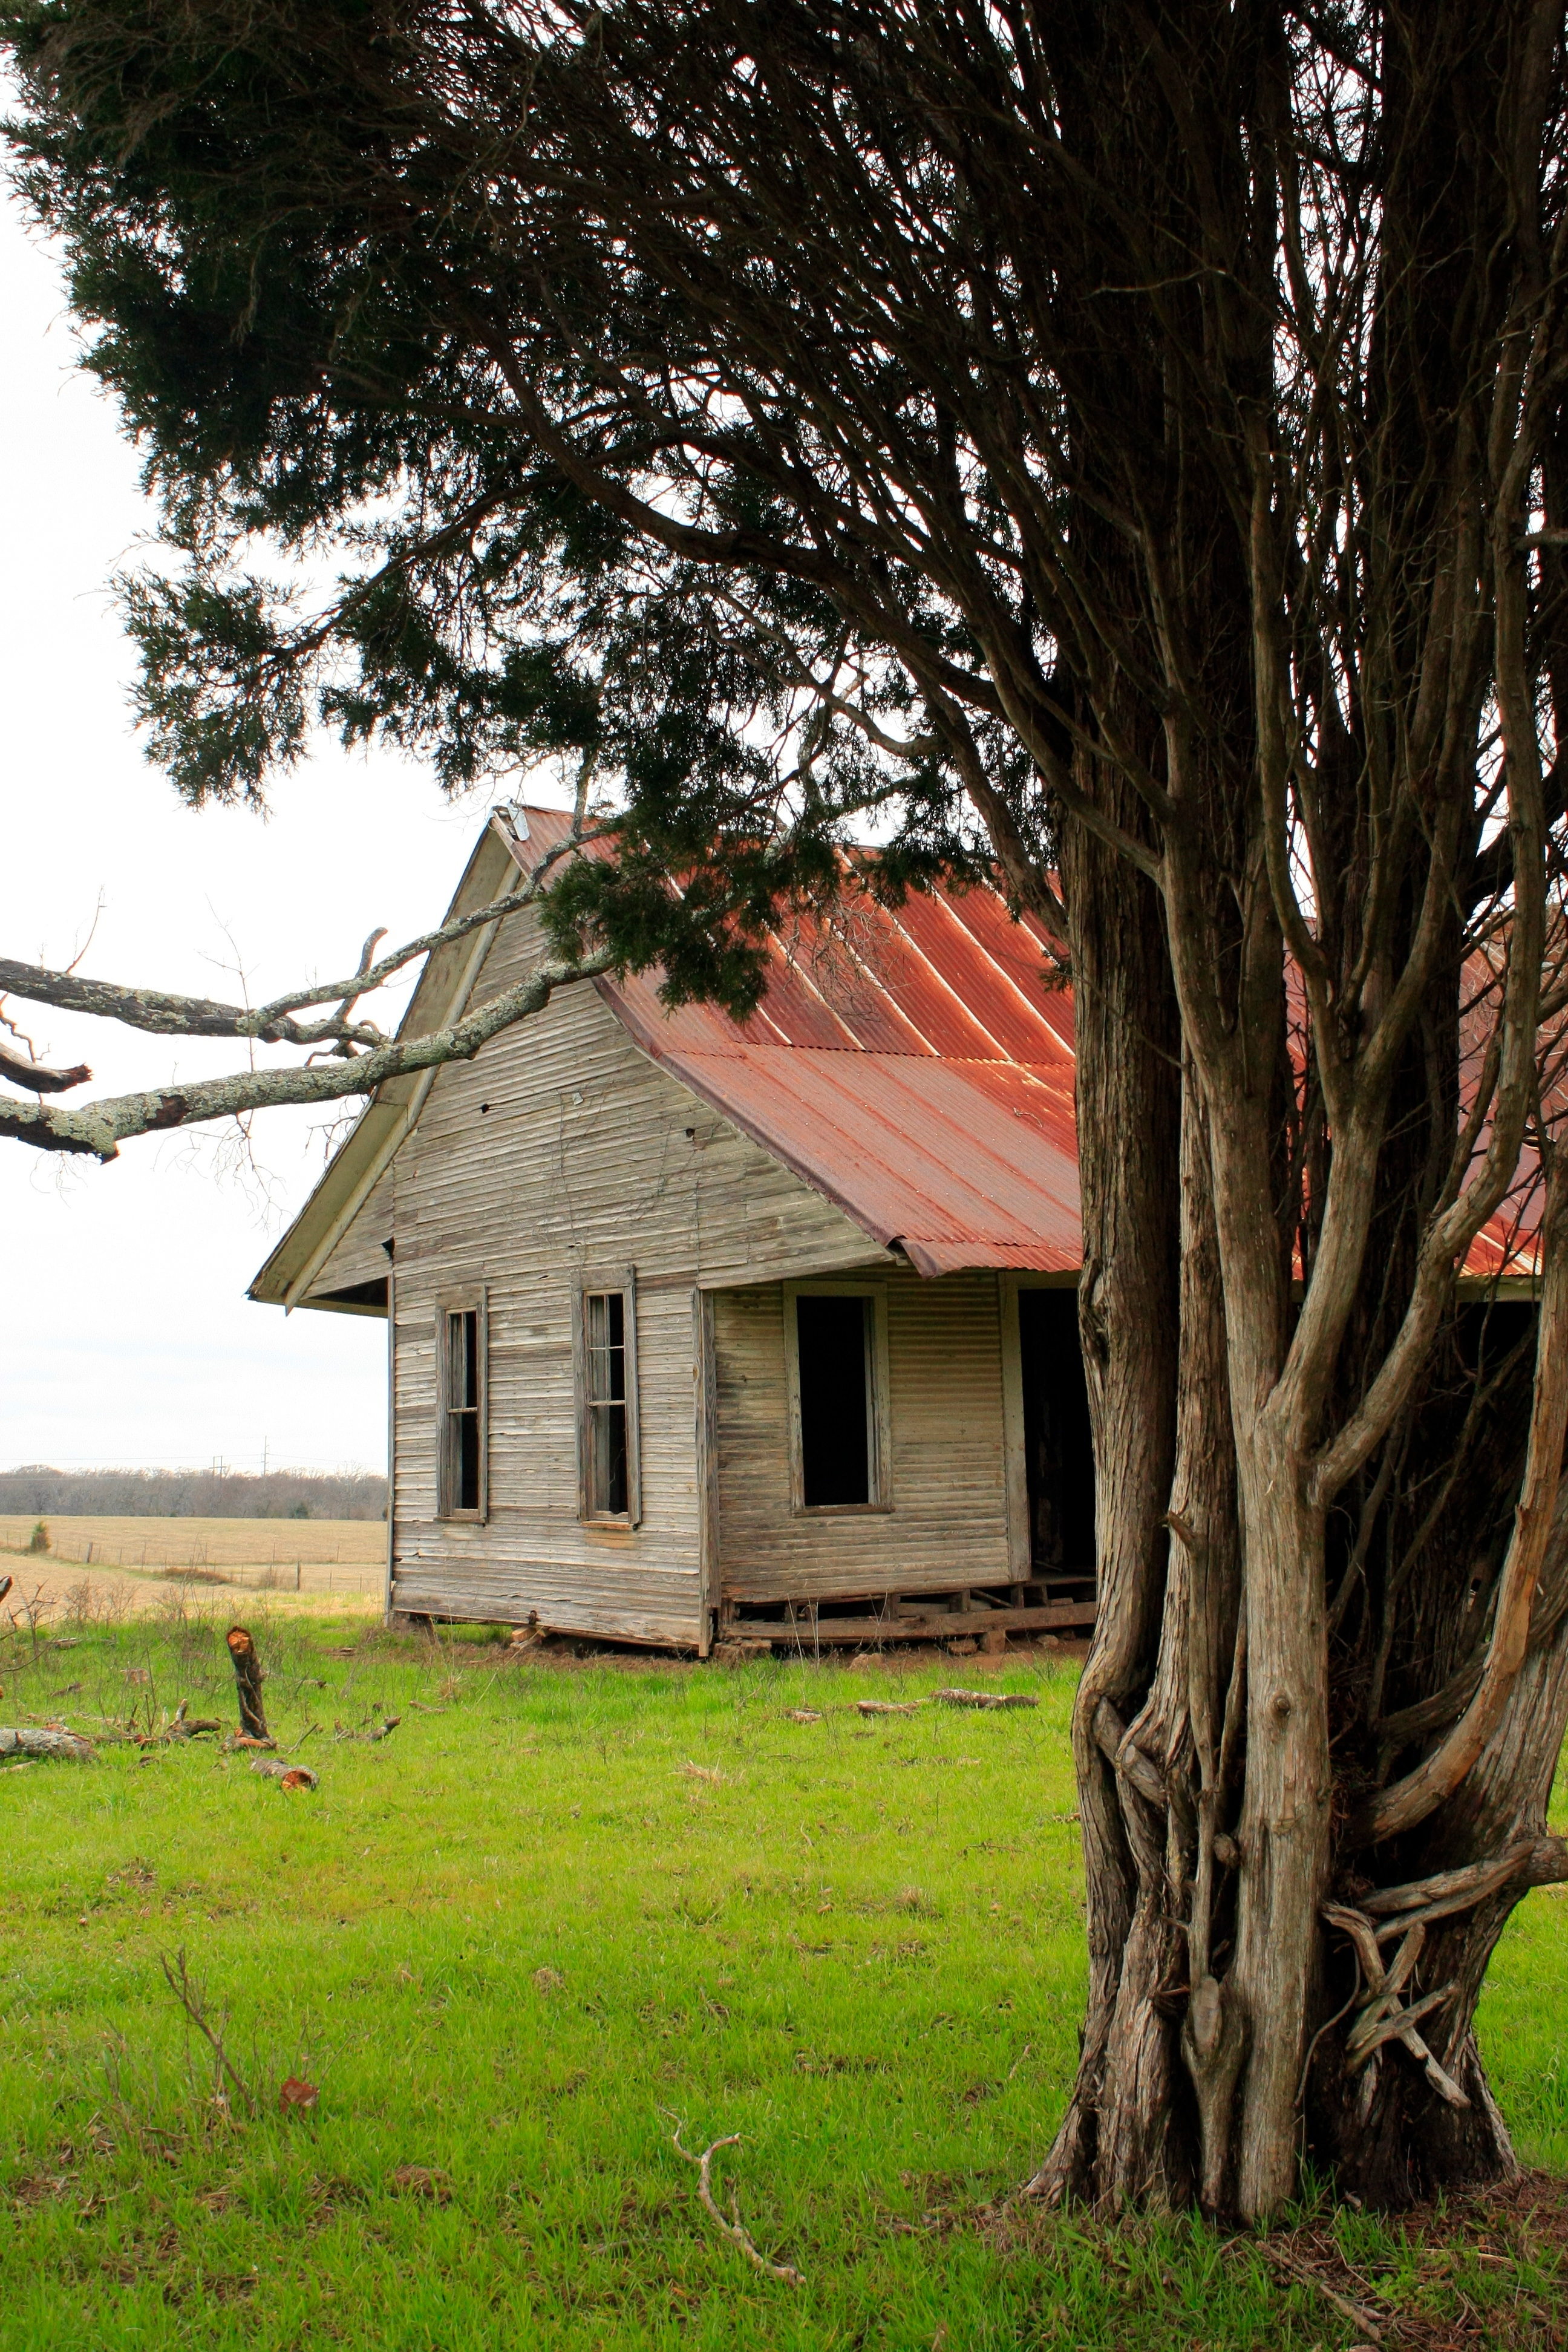 Free Images : tree, wood, farm, house, flower, building, barn, home ...